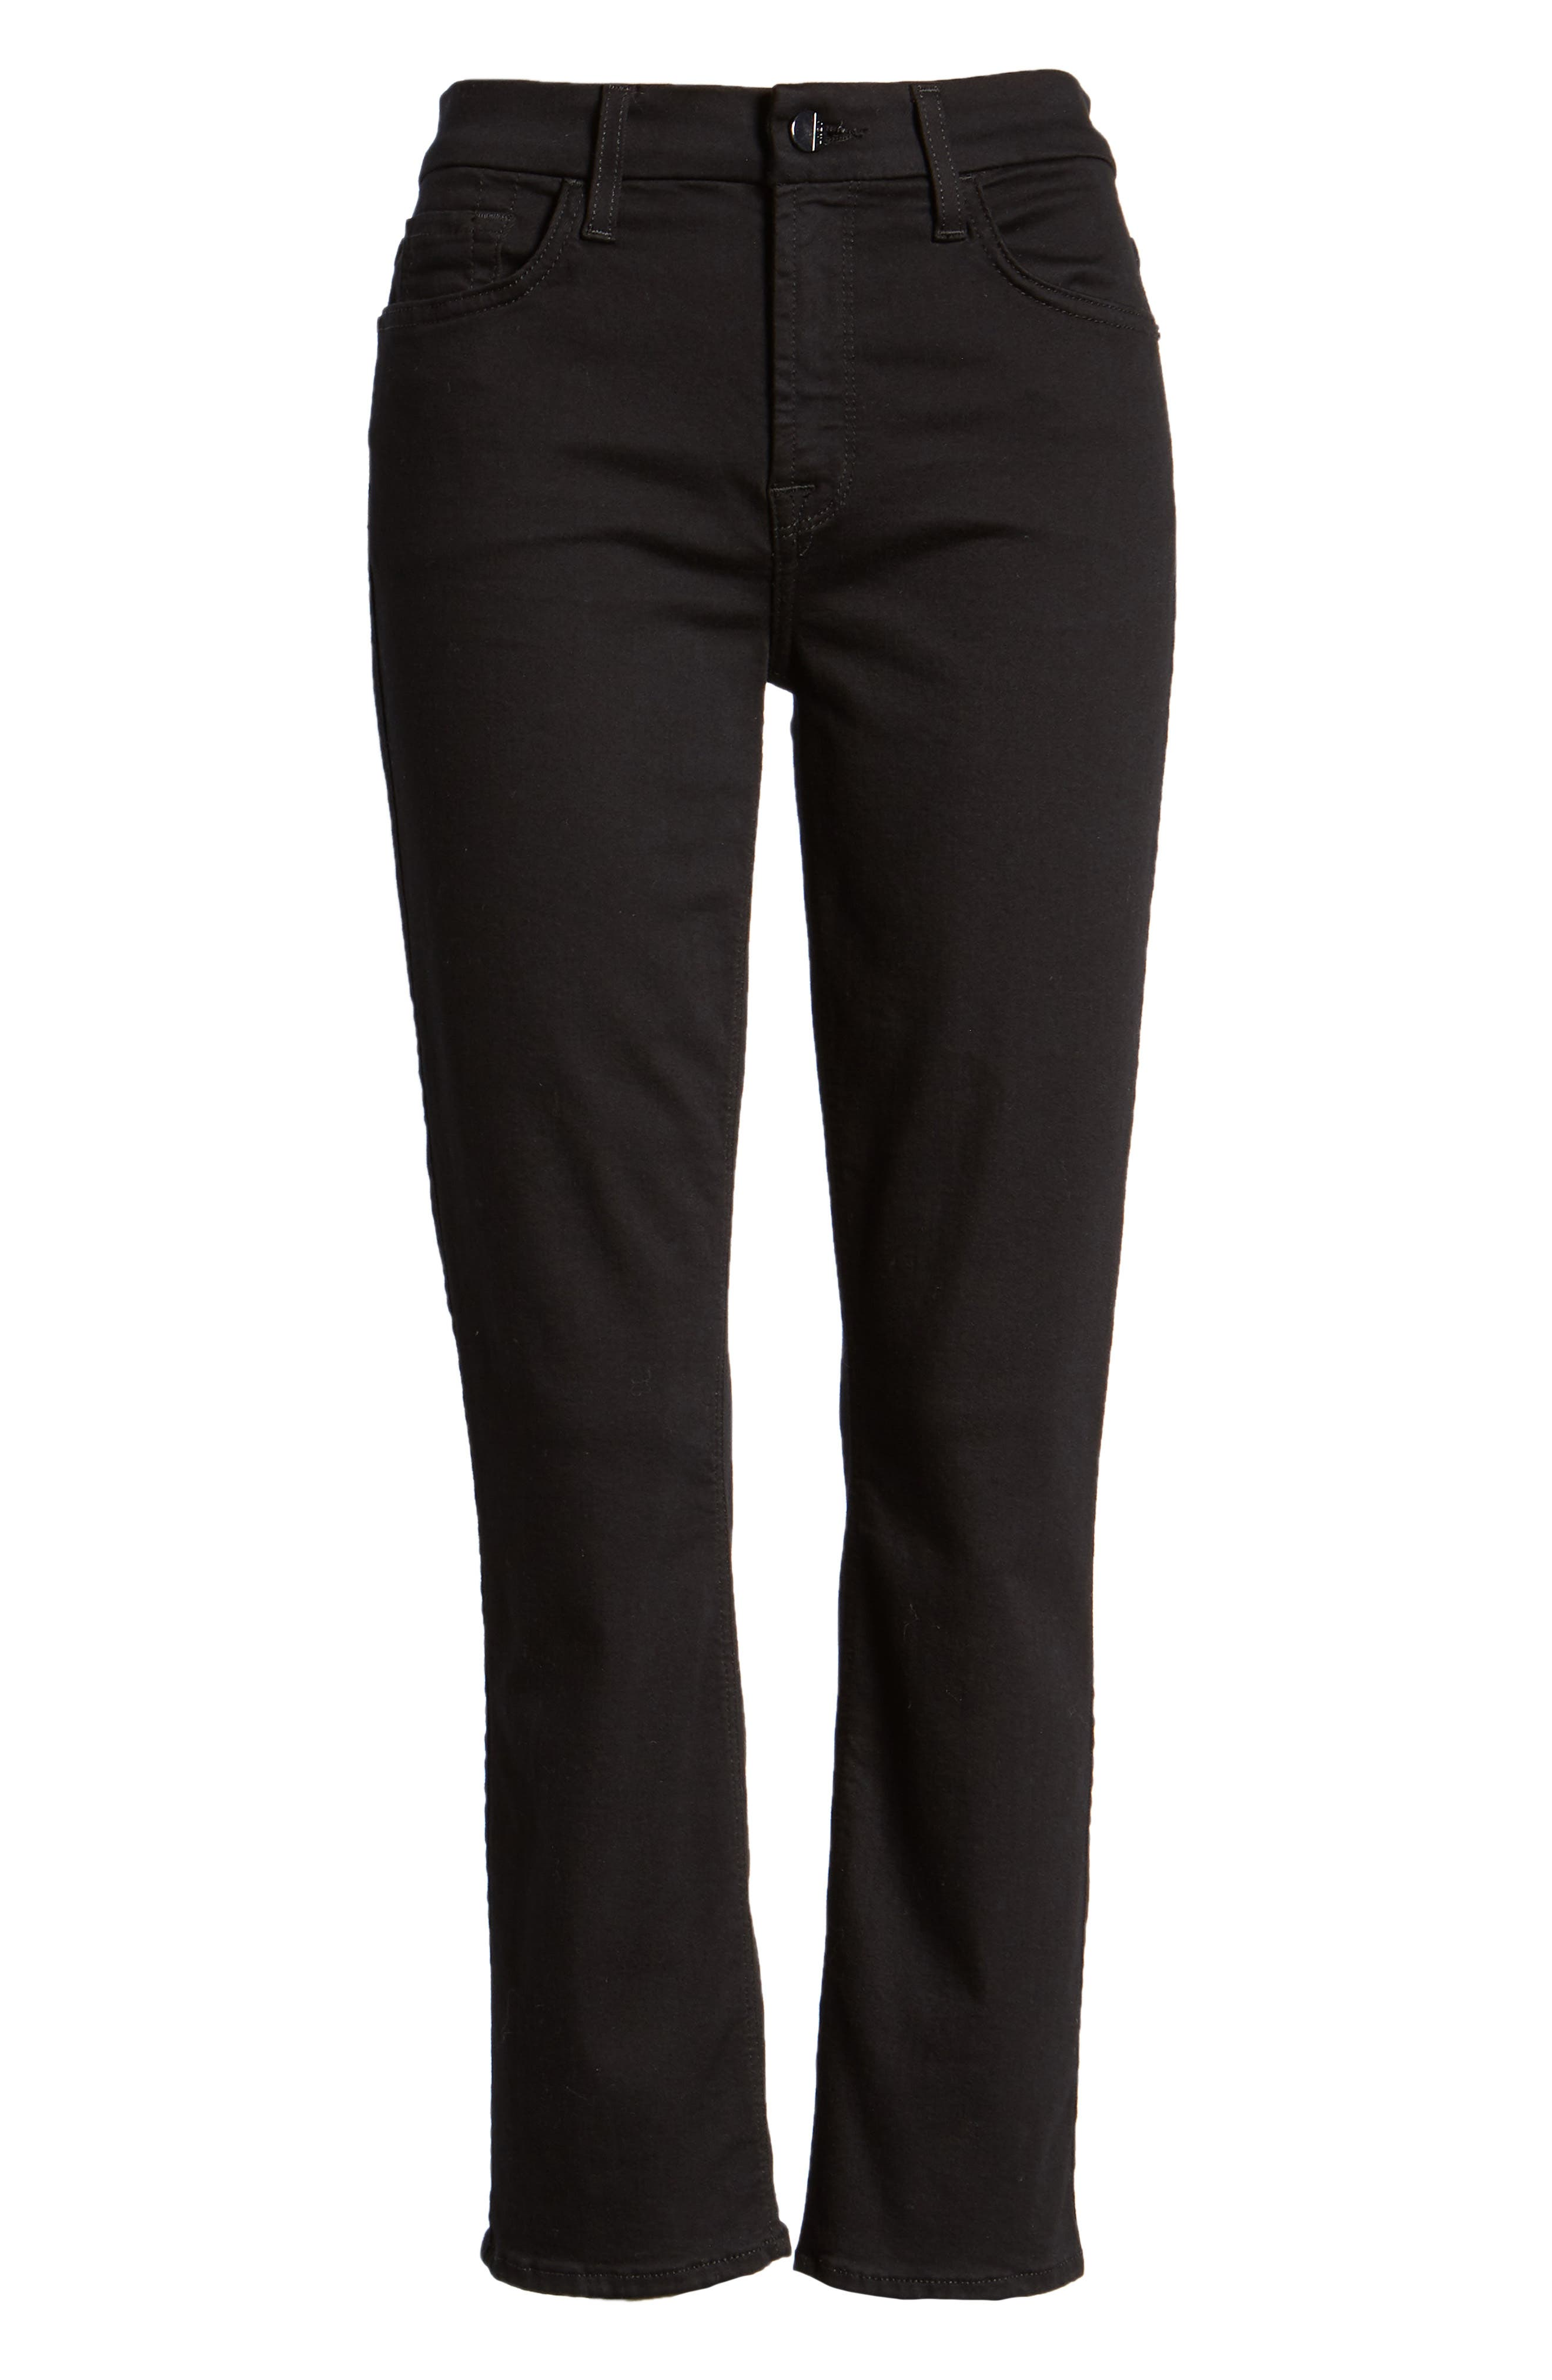 JEN7 BY 7 FOR ALL MANKIND, Stretch Crop Straight Leg Jeans, Alternate thumbnail 6, color, BLACK